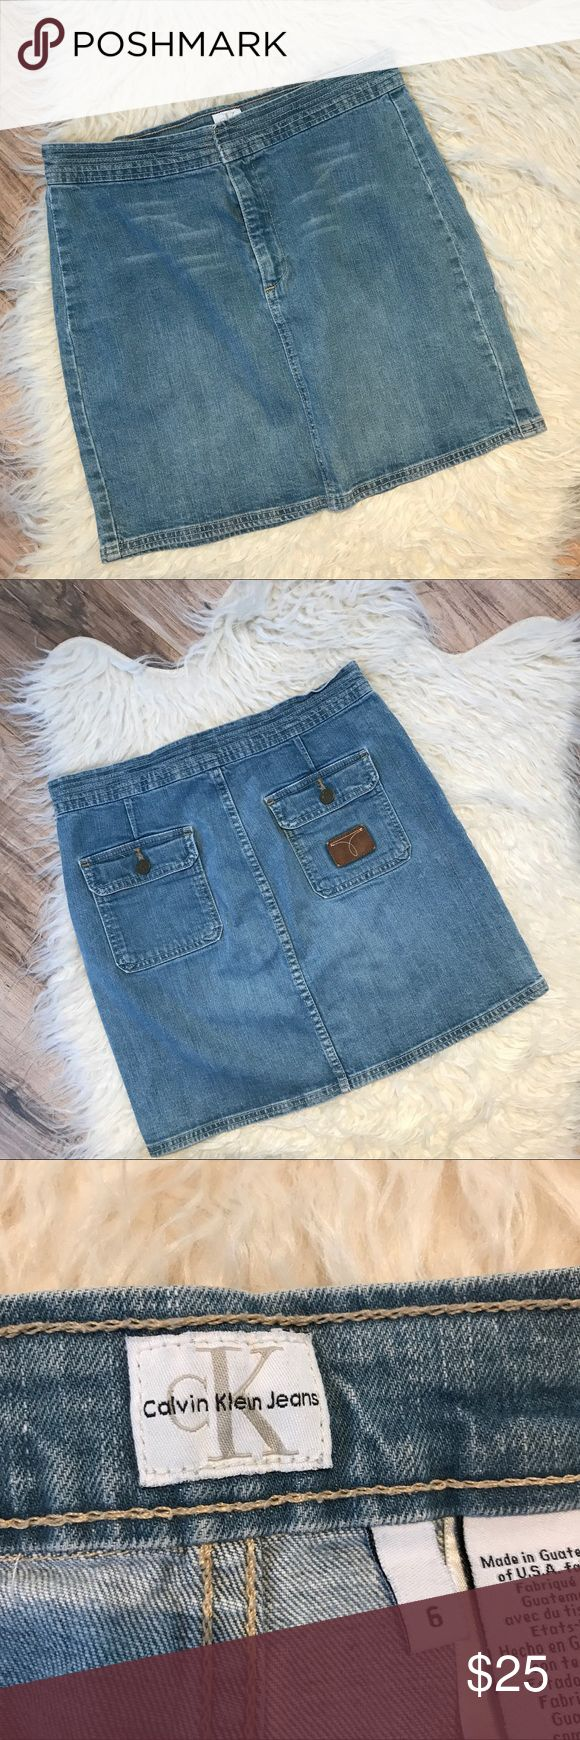 """Vintage Calvin Klein jean mini skirt Good condition, no rips stains or pilling, 98% cotton, 2% Lycra, 15"""" waist laying flat, 16"""" long, color- blue, no trading or modeling. Calvin Klein Skirts Mini"""